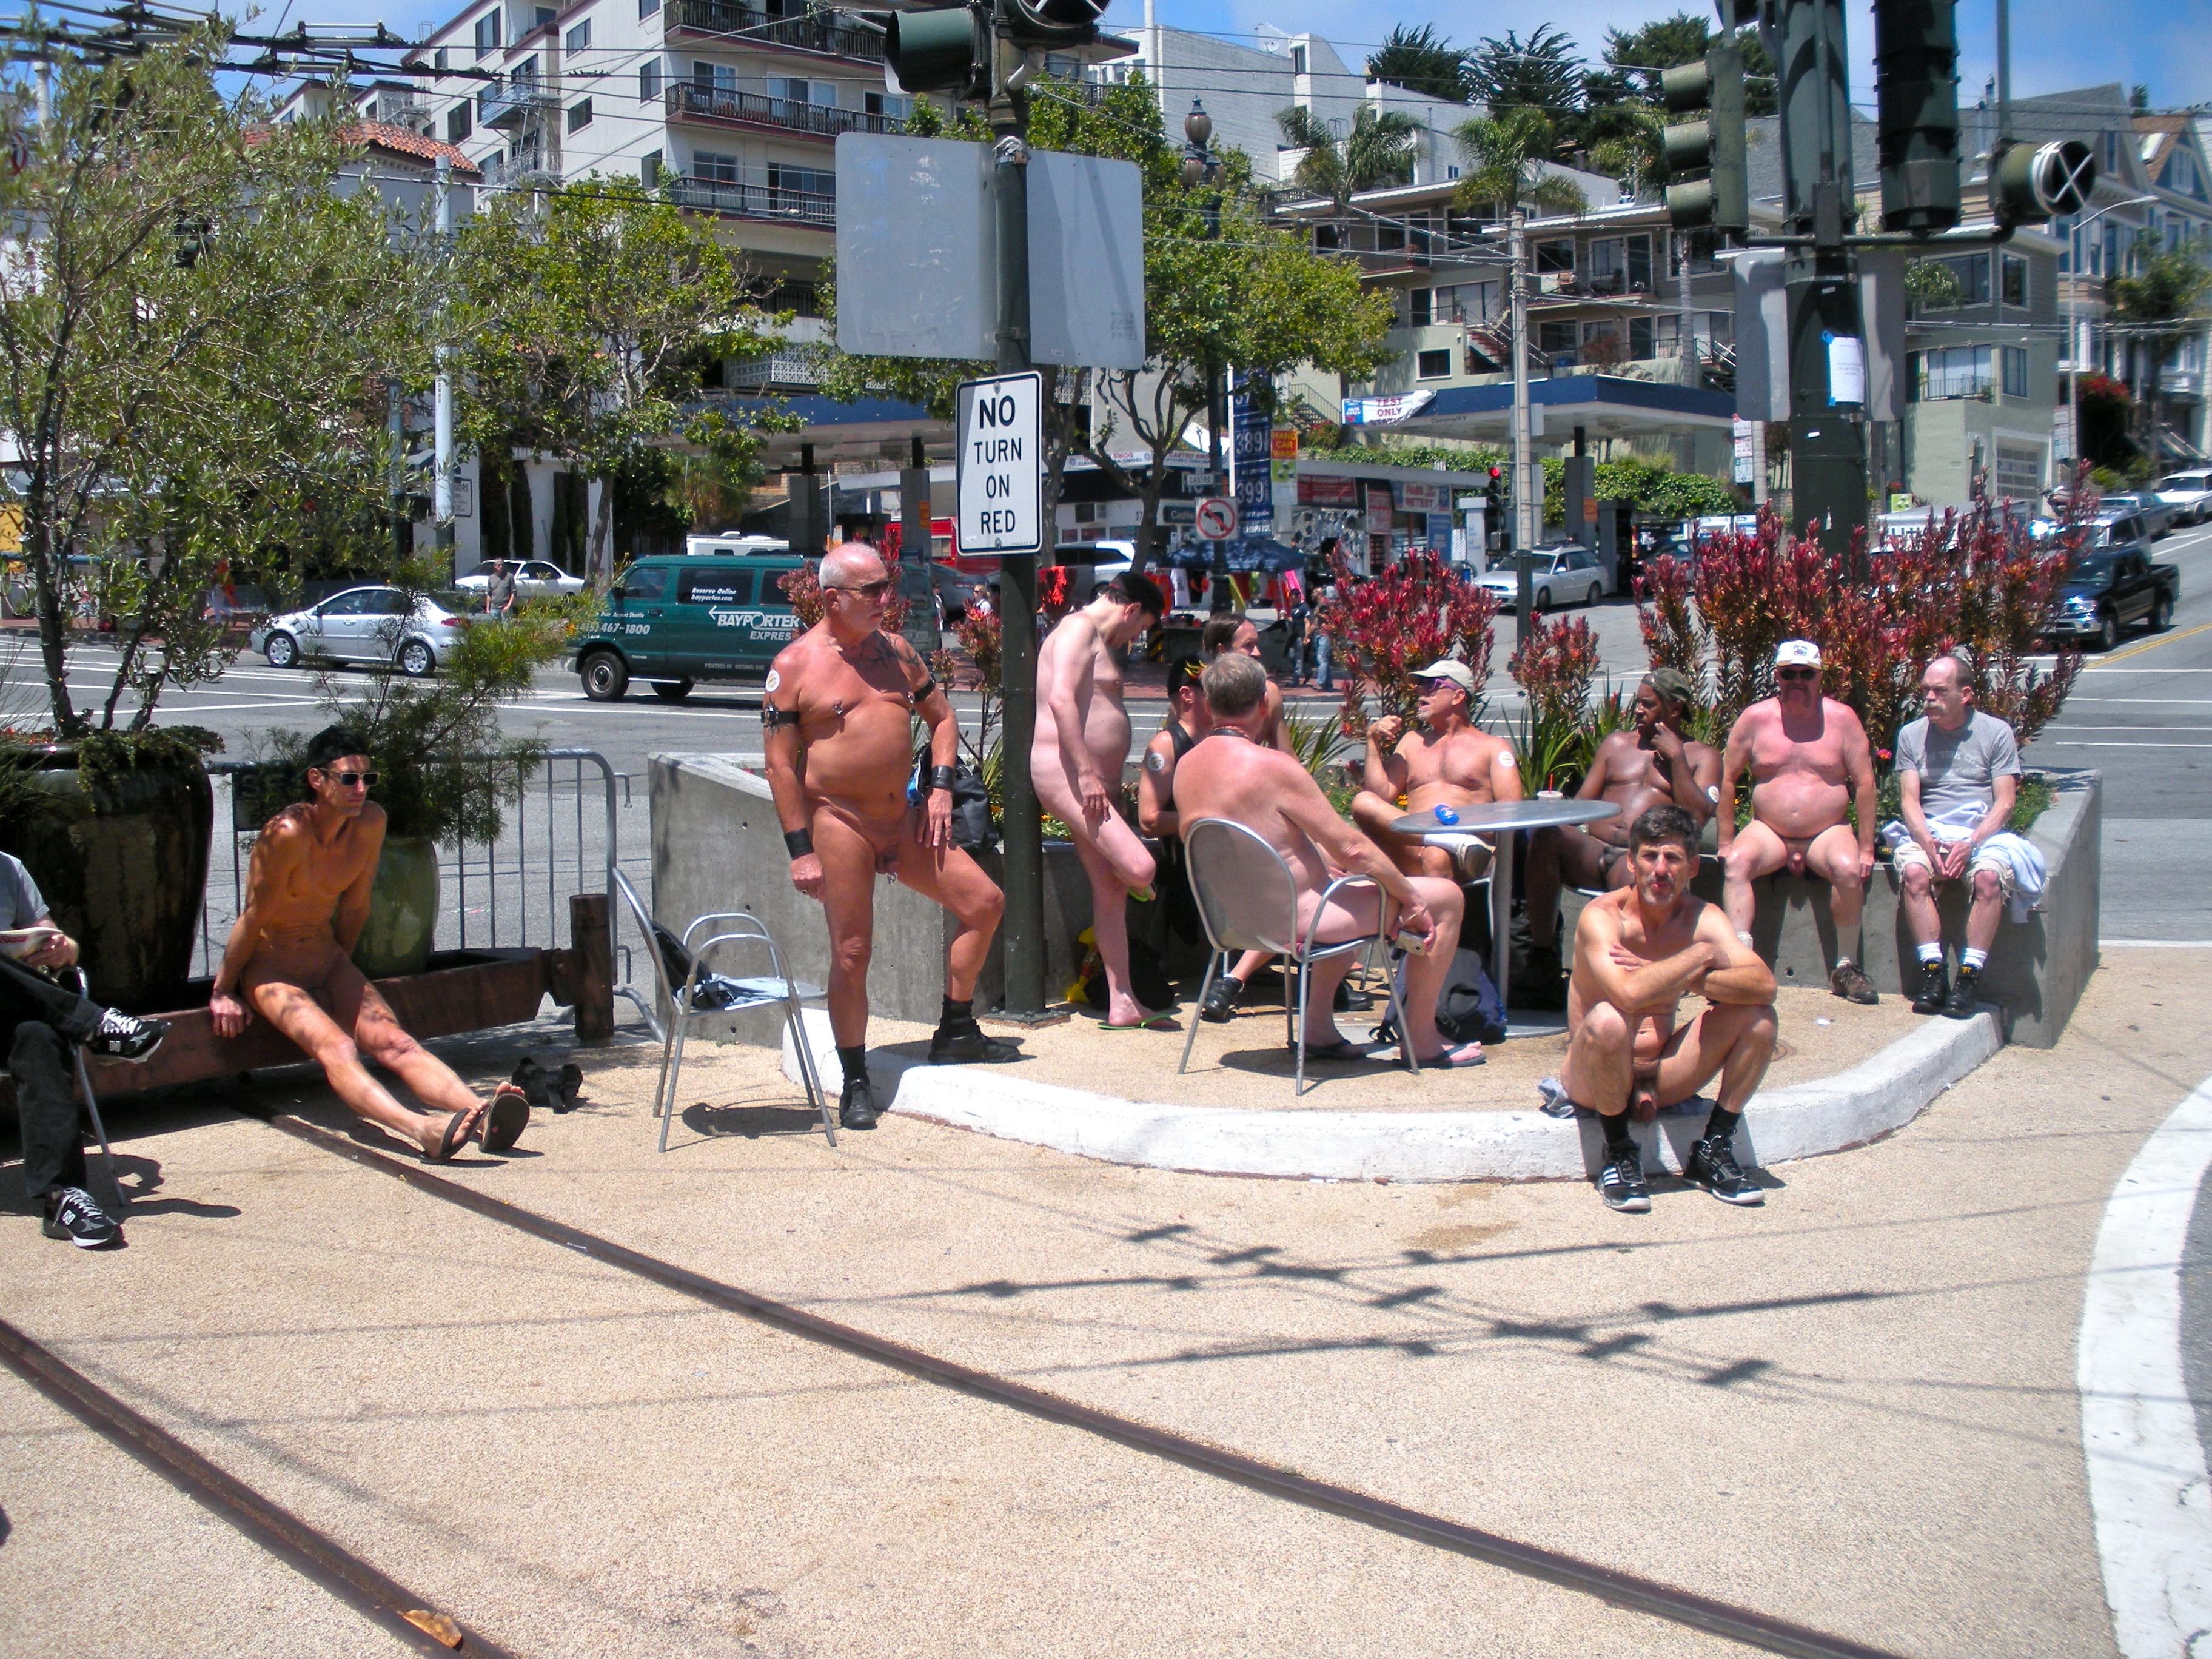 nude events san francisco